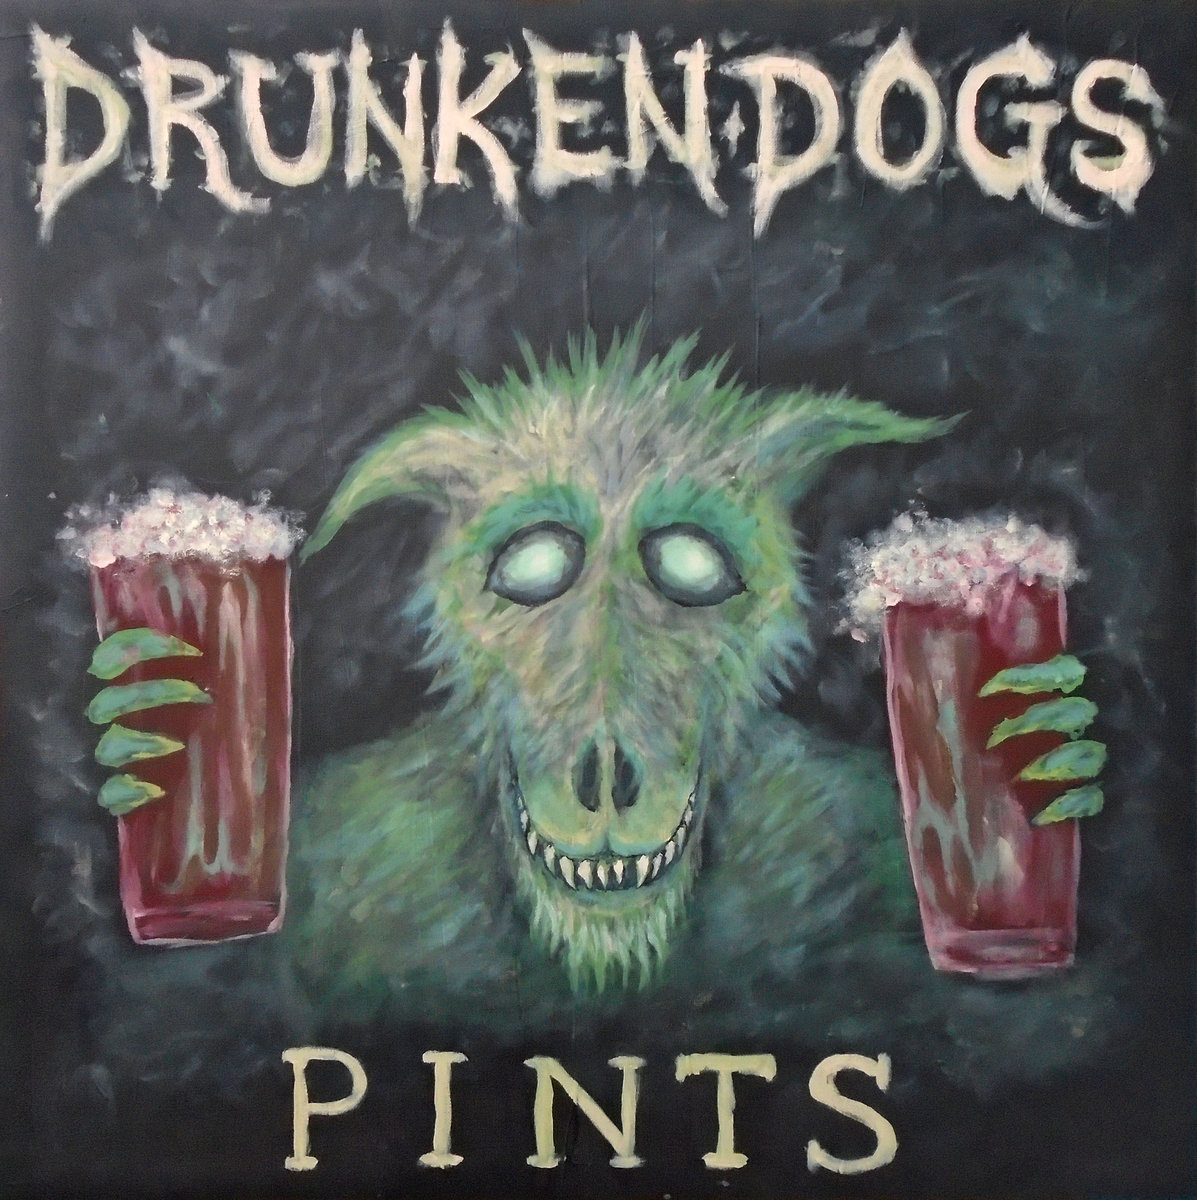 Drunken Dogs Pints Self Released Release Date March 12 2016 Running Time 3422 14 Tracks